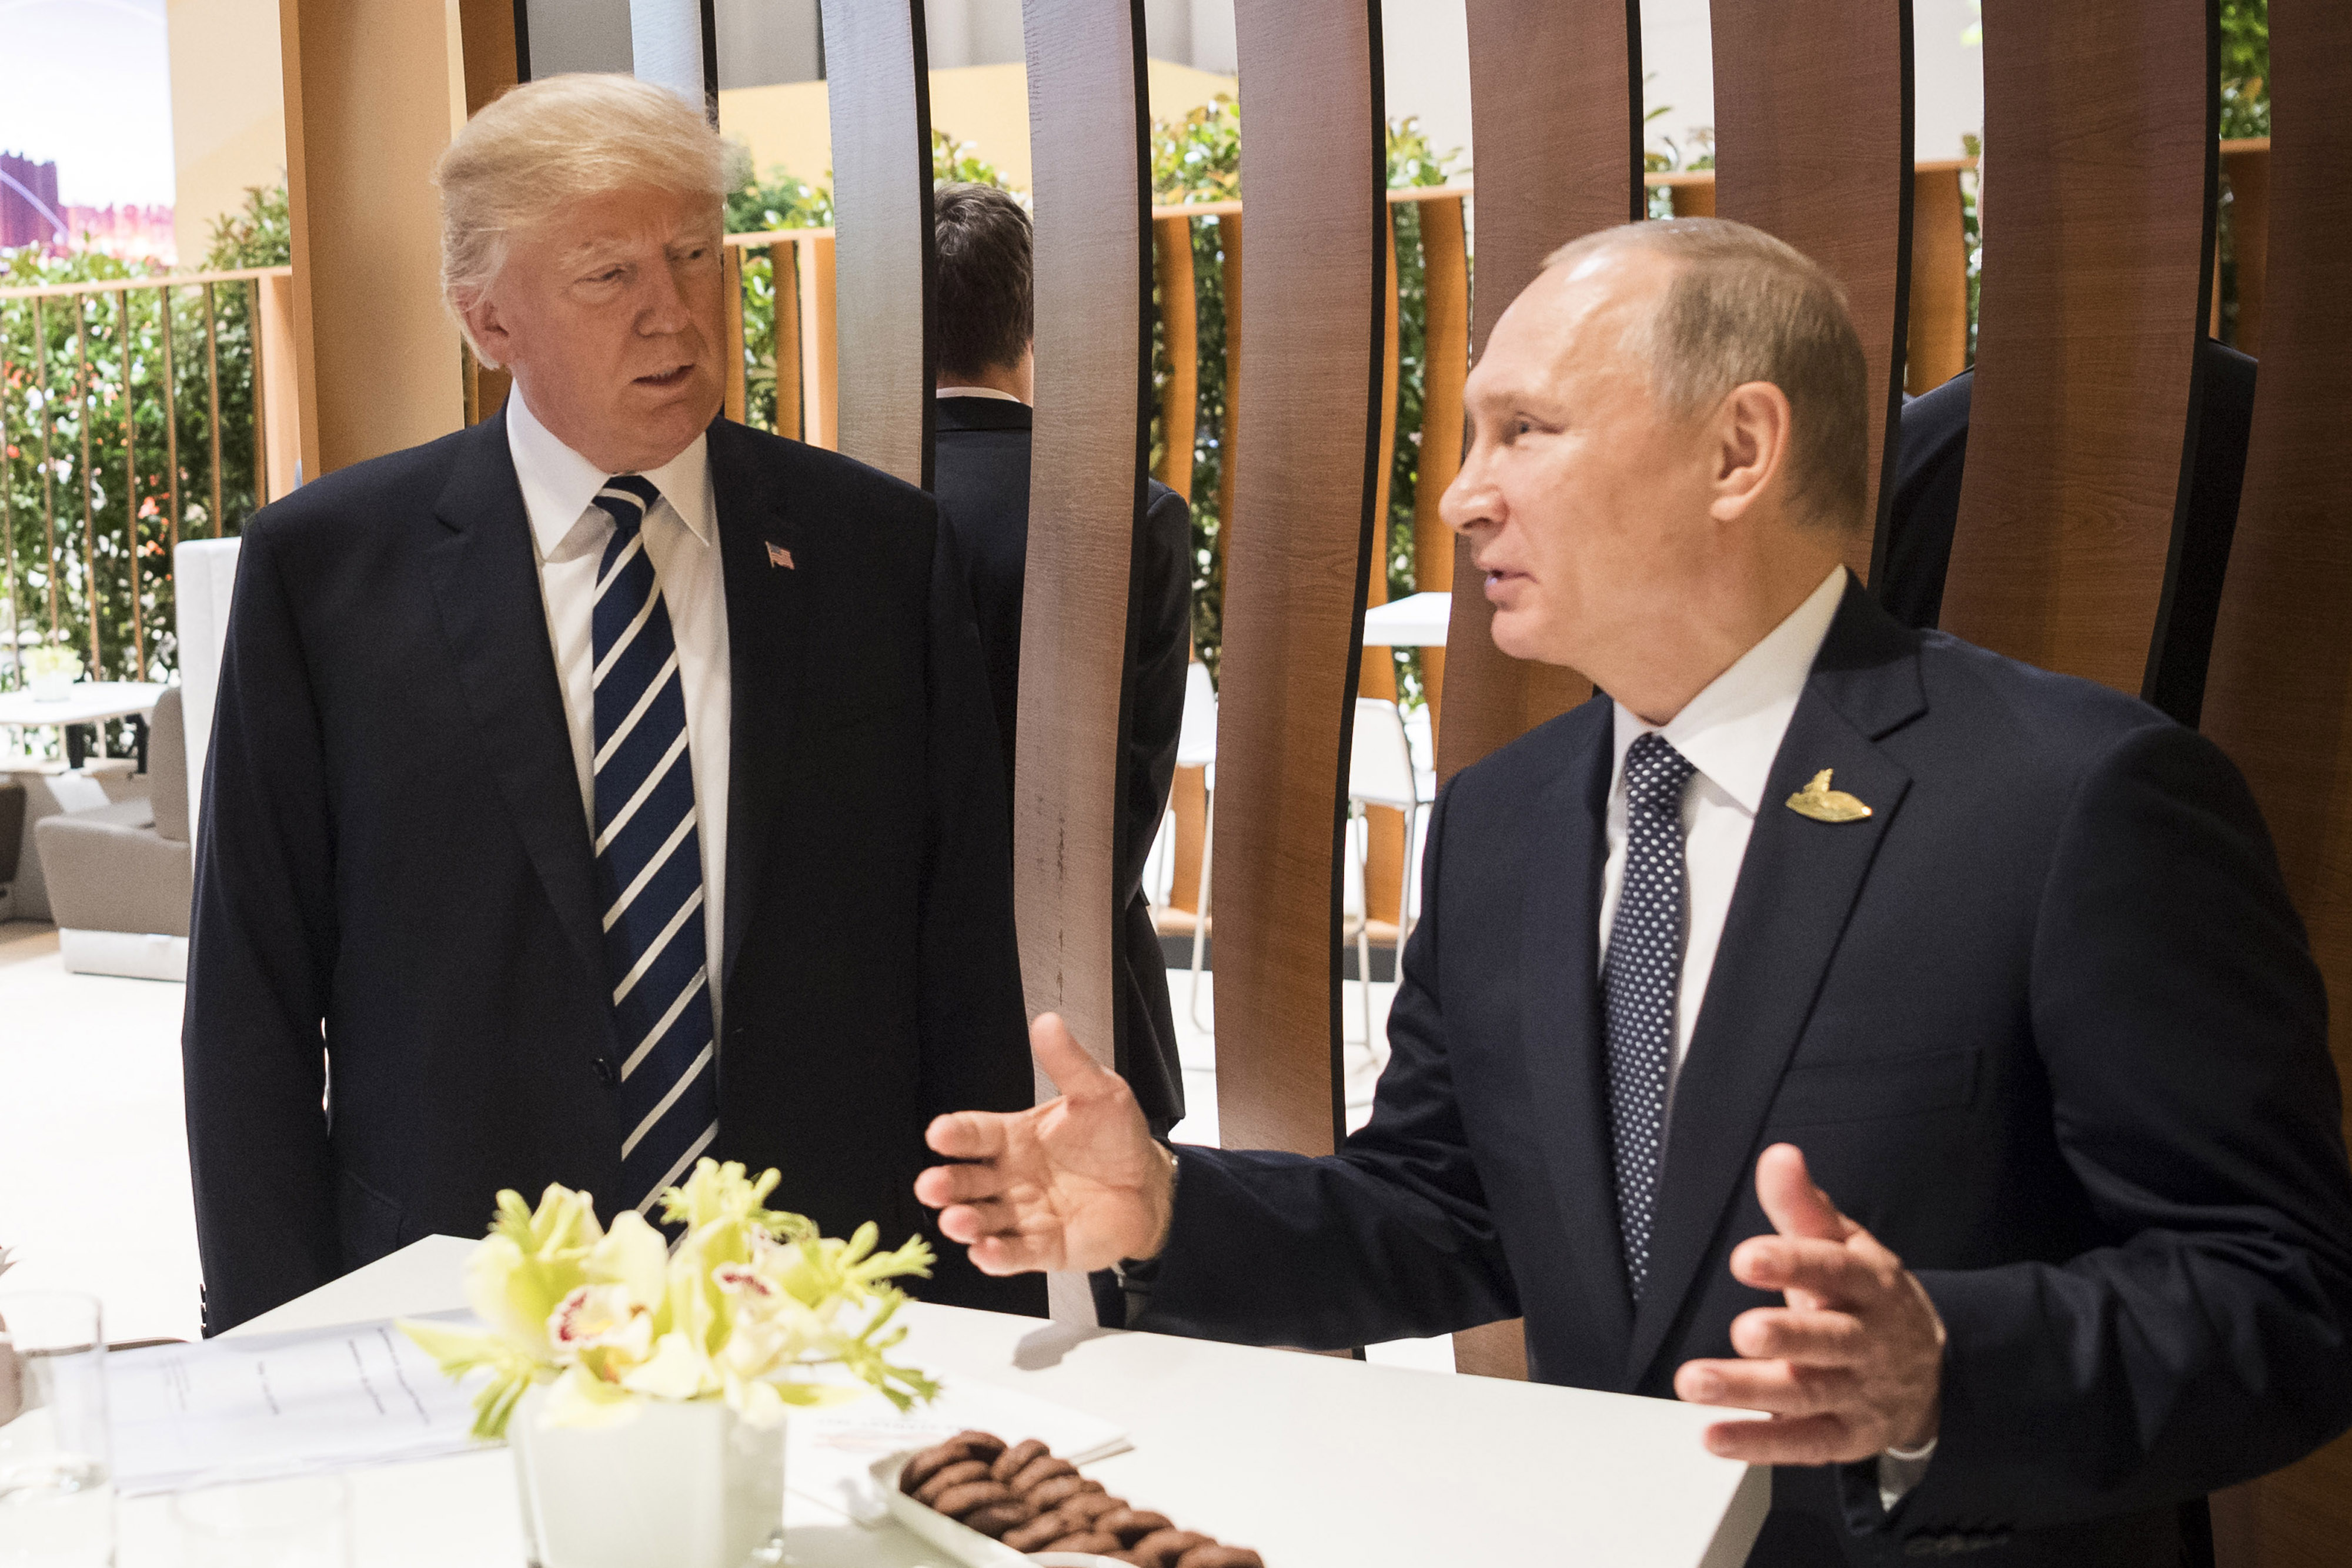 President Donald Trump meets Russian President Vladimir Putin during the G20 Summit on July 7, 2017 in Hamburg.